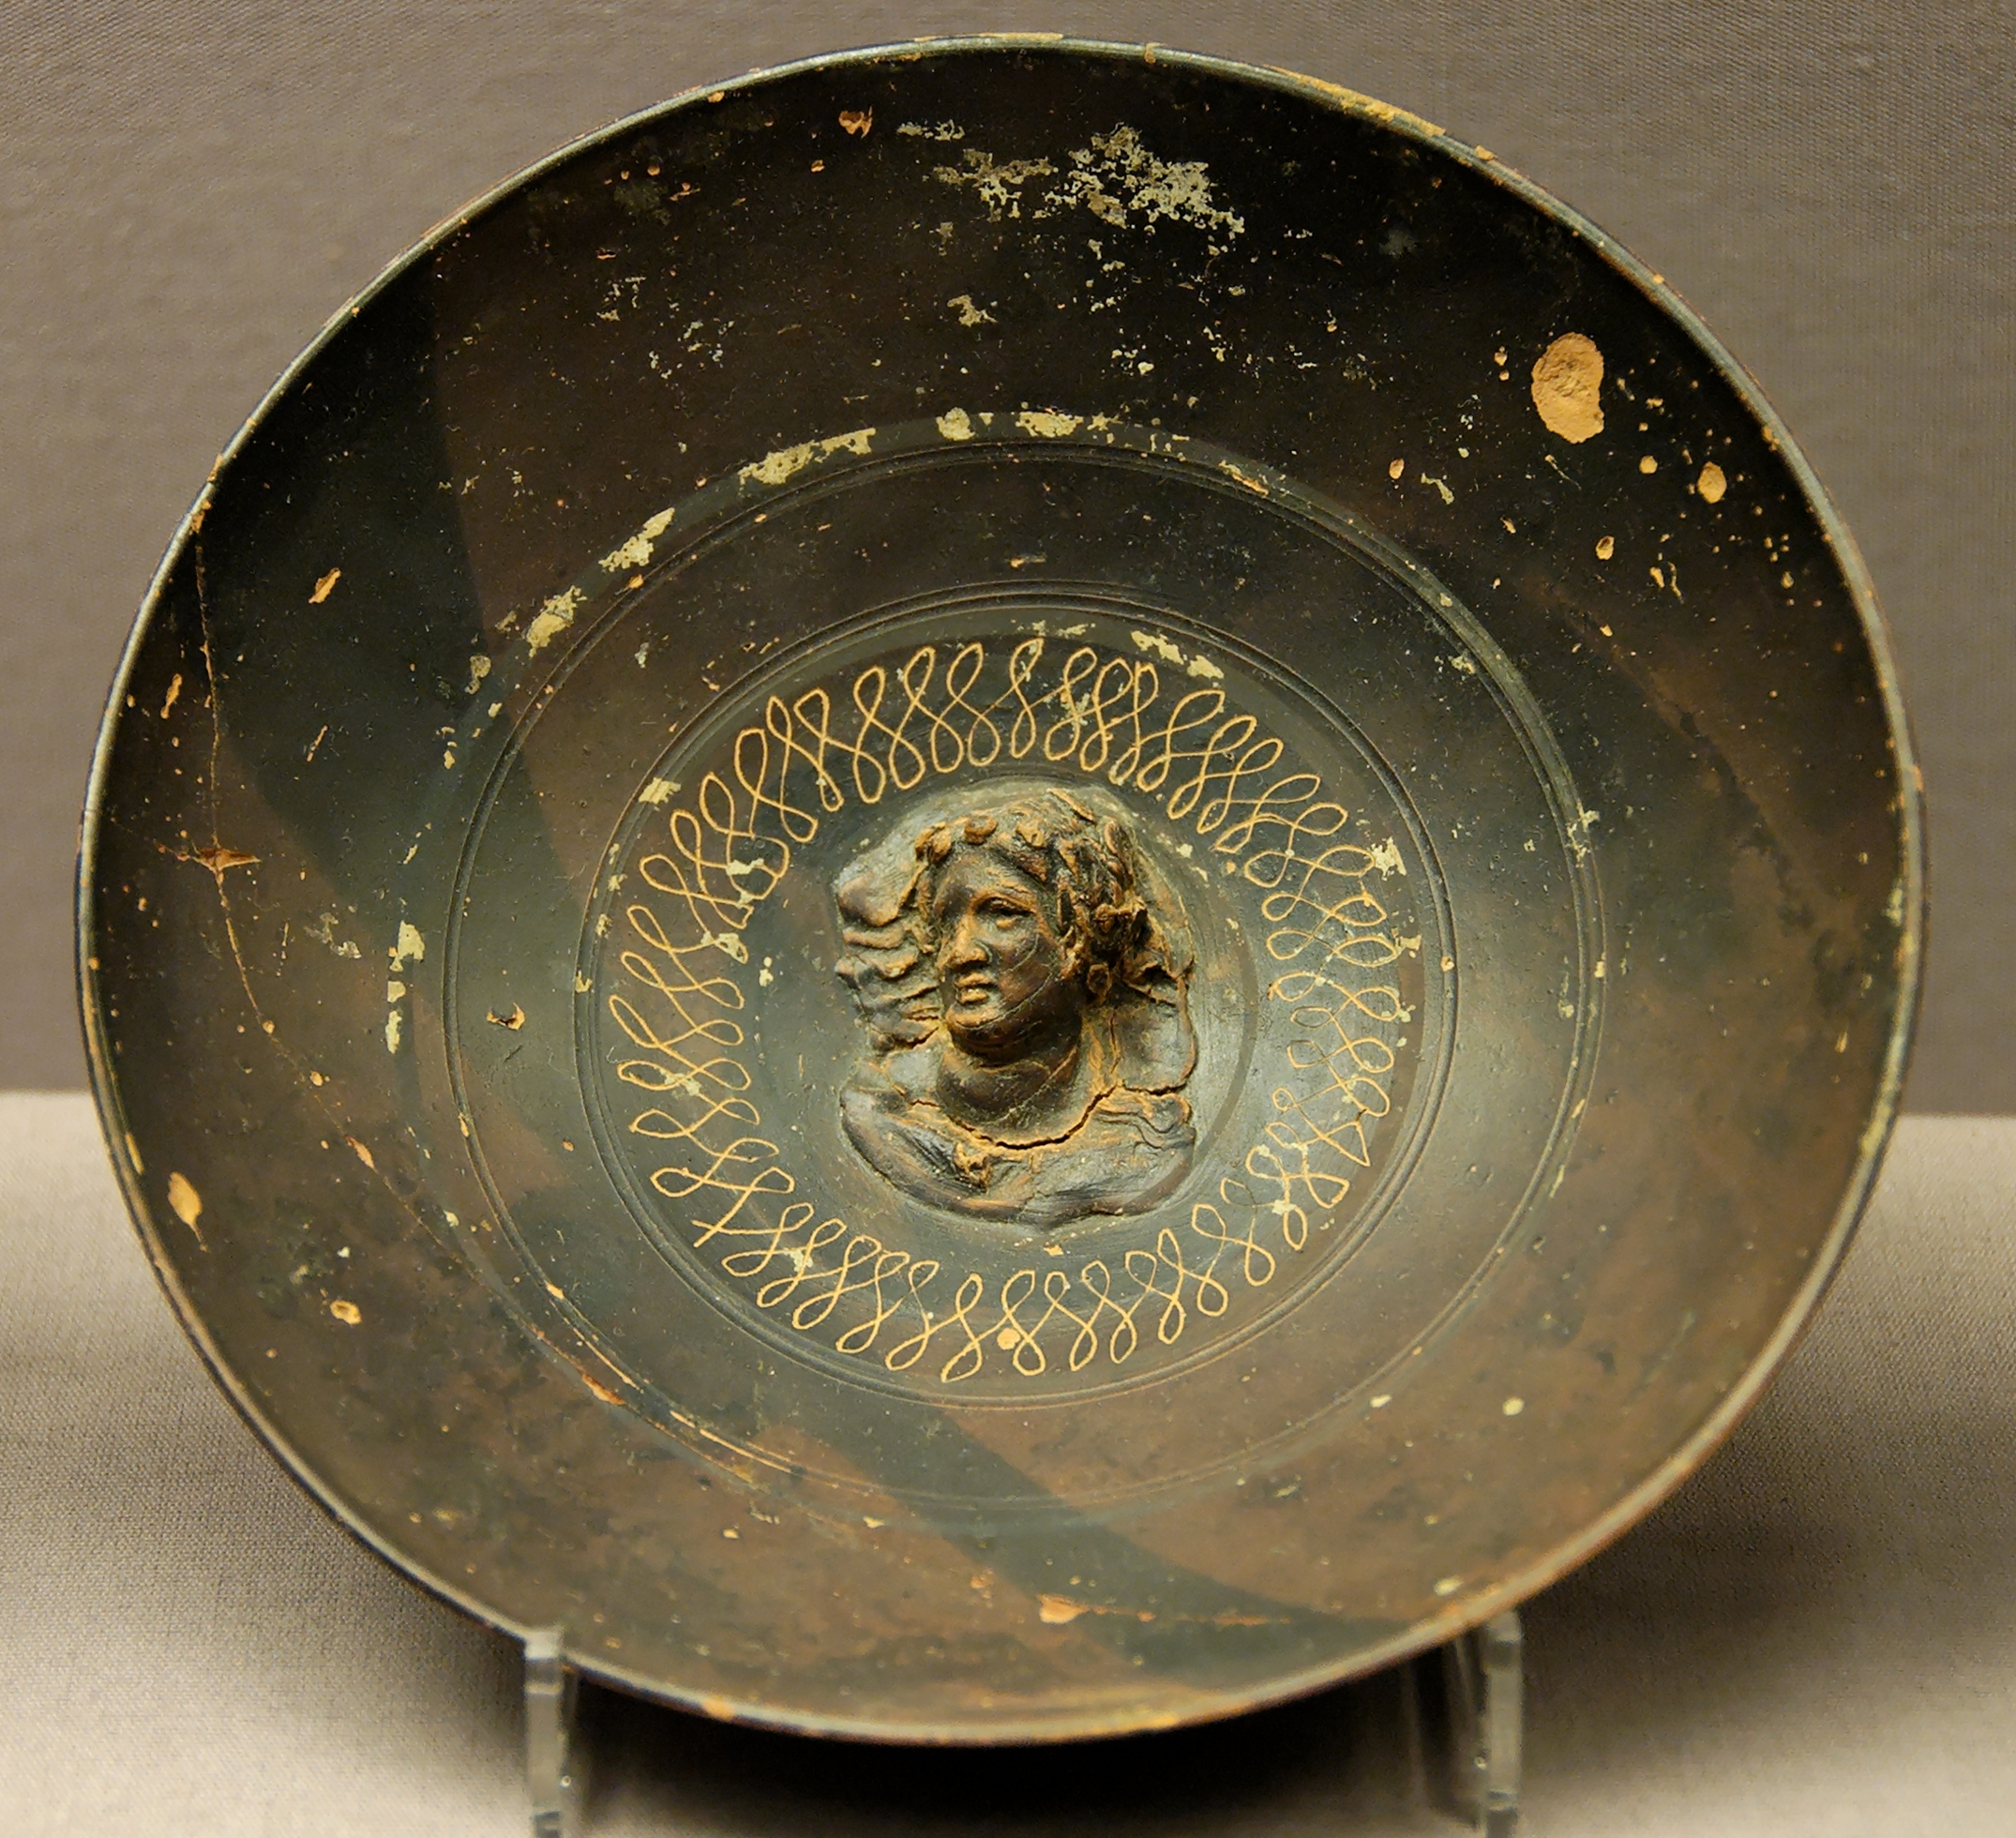 http://upload.wikimedia.org/wikipedia/commons/2/22/Bowl_maenad_BM_GR1898.11-21.2.jpg